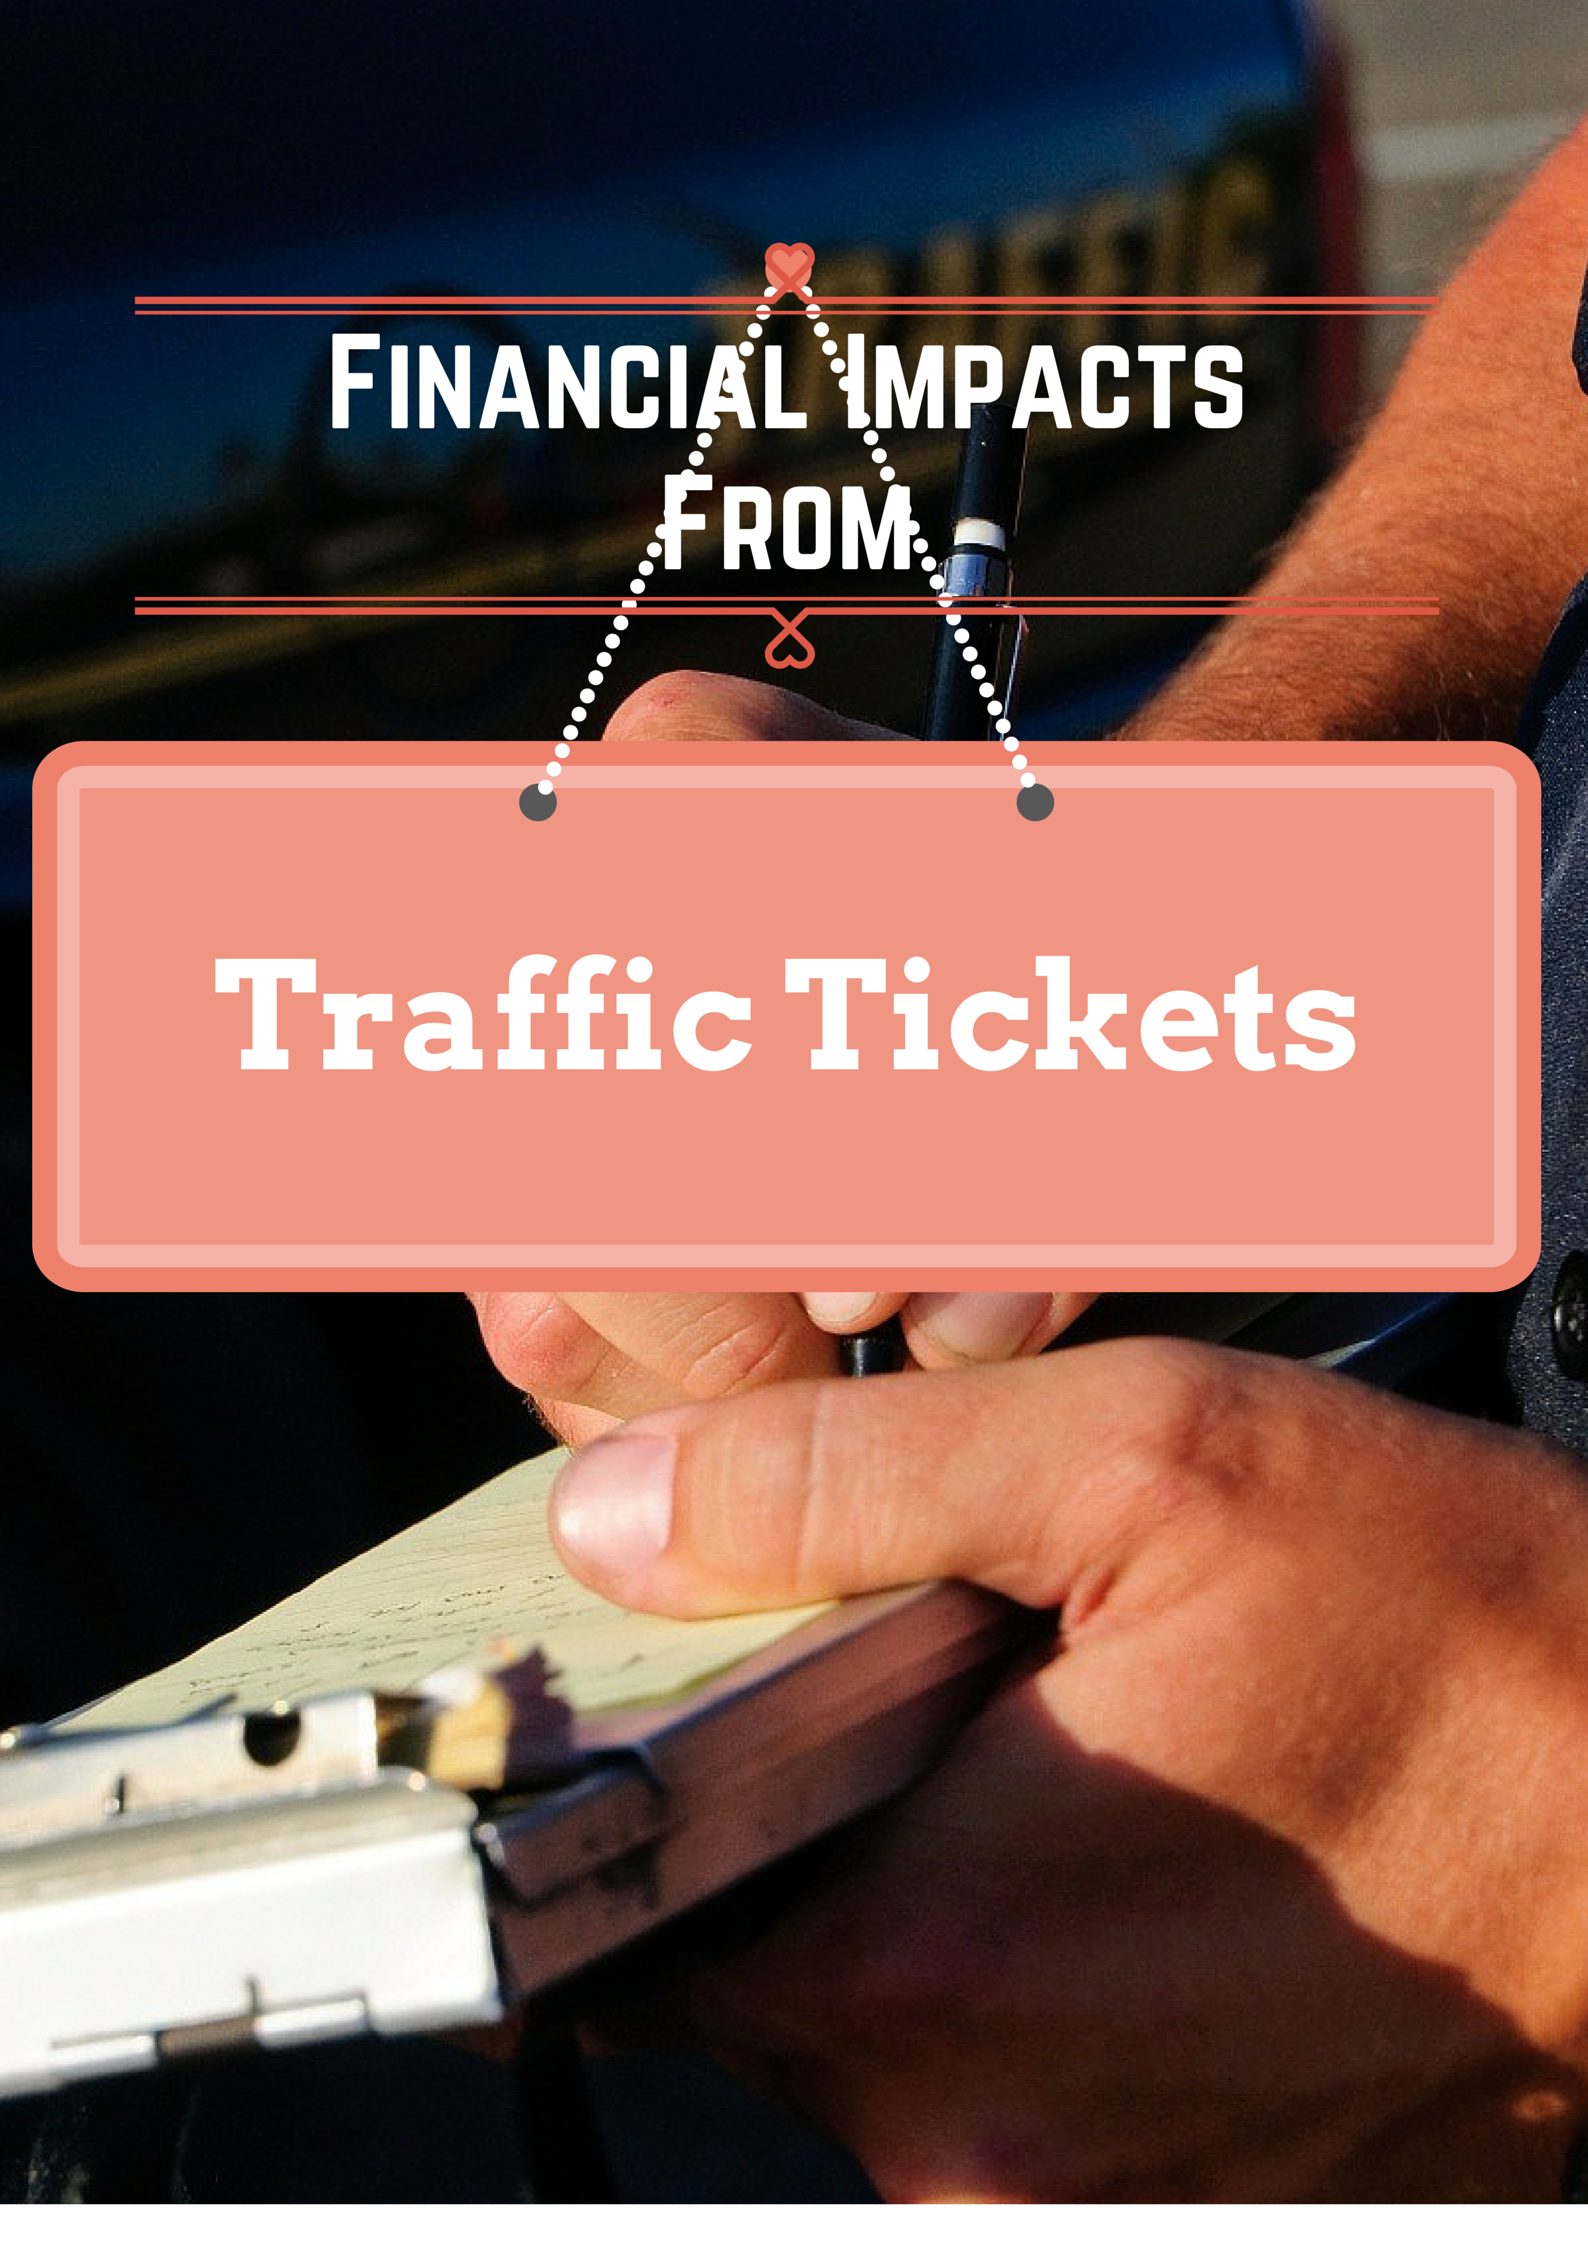 Financial Impacts From Traffic Tickets